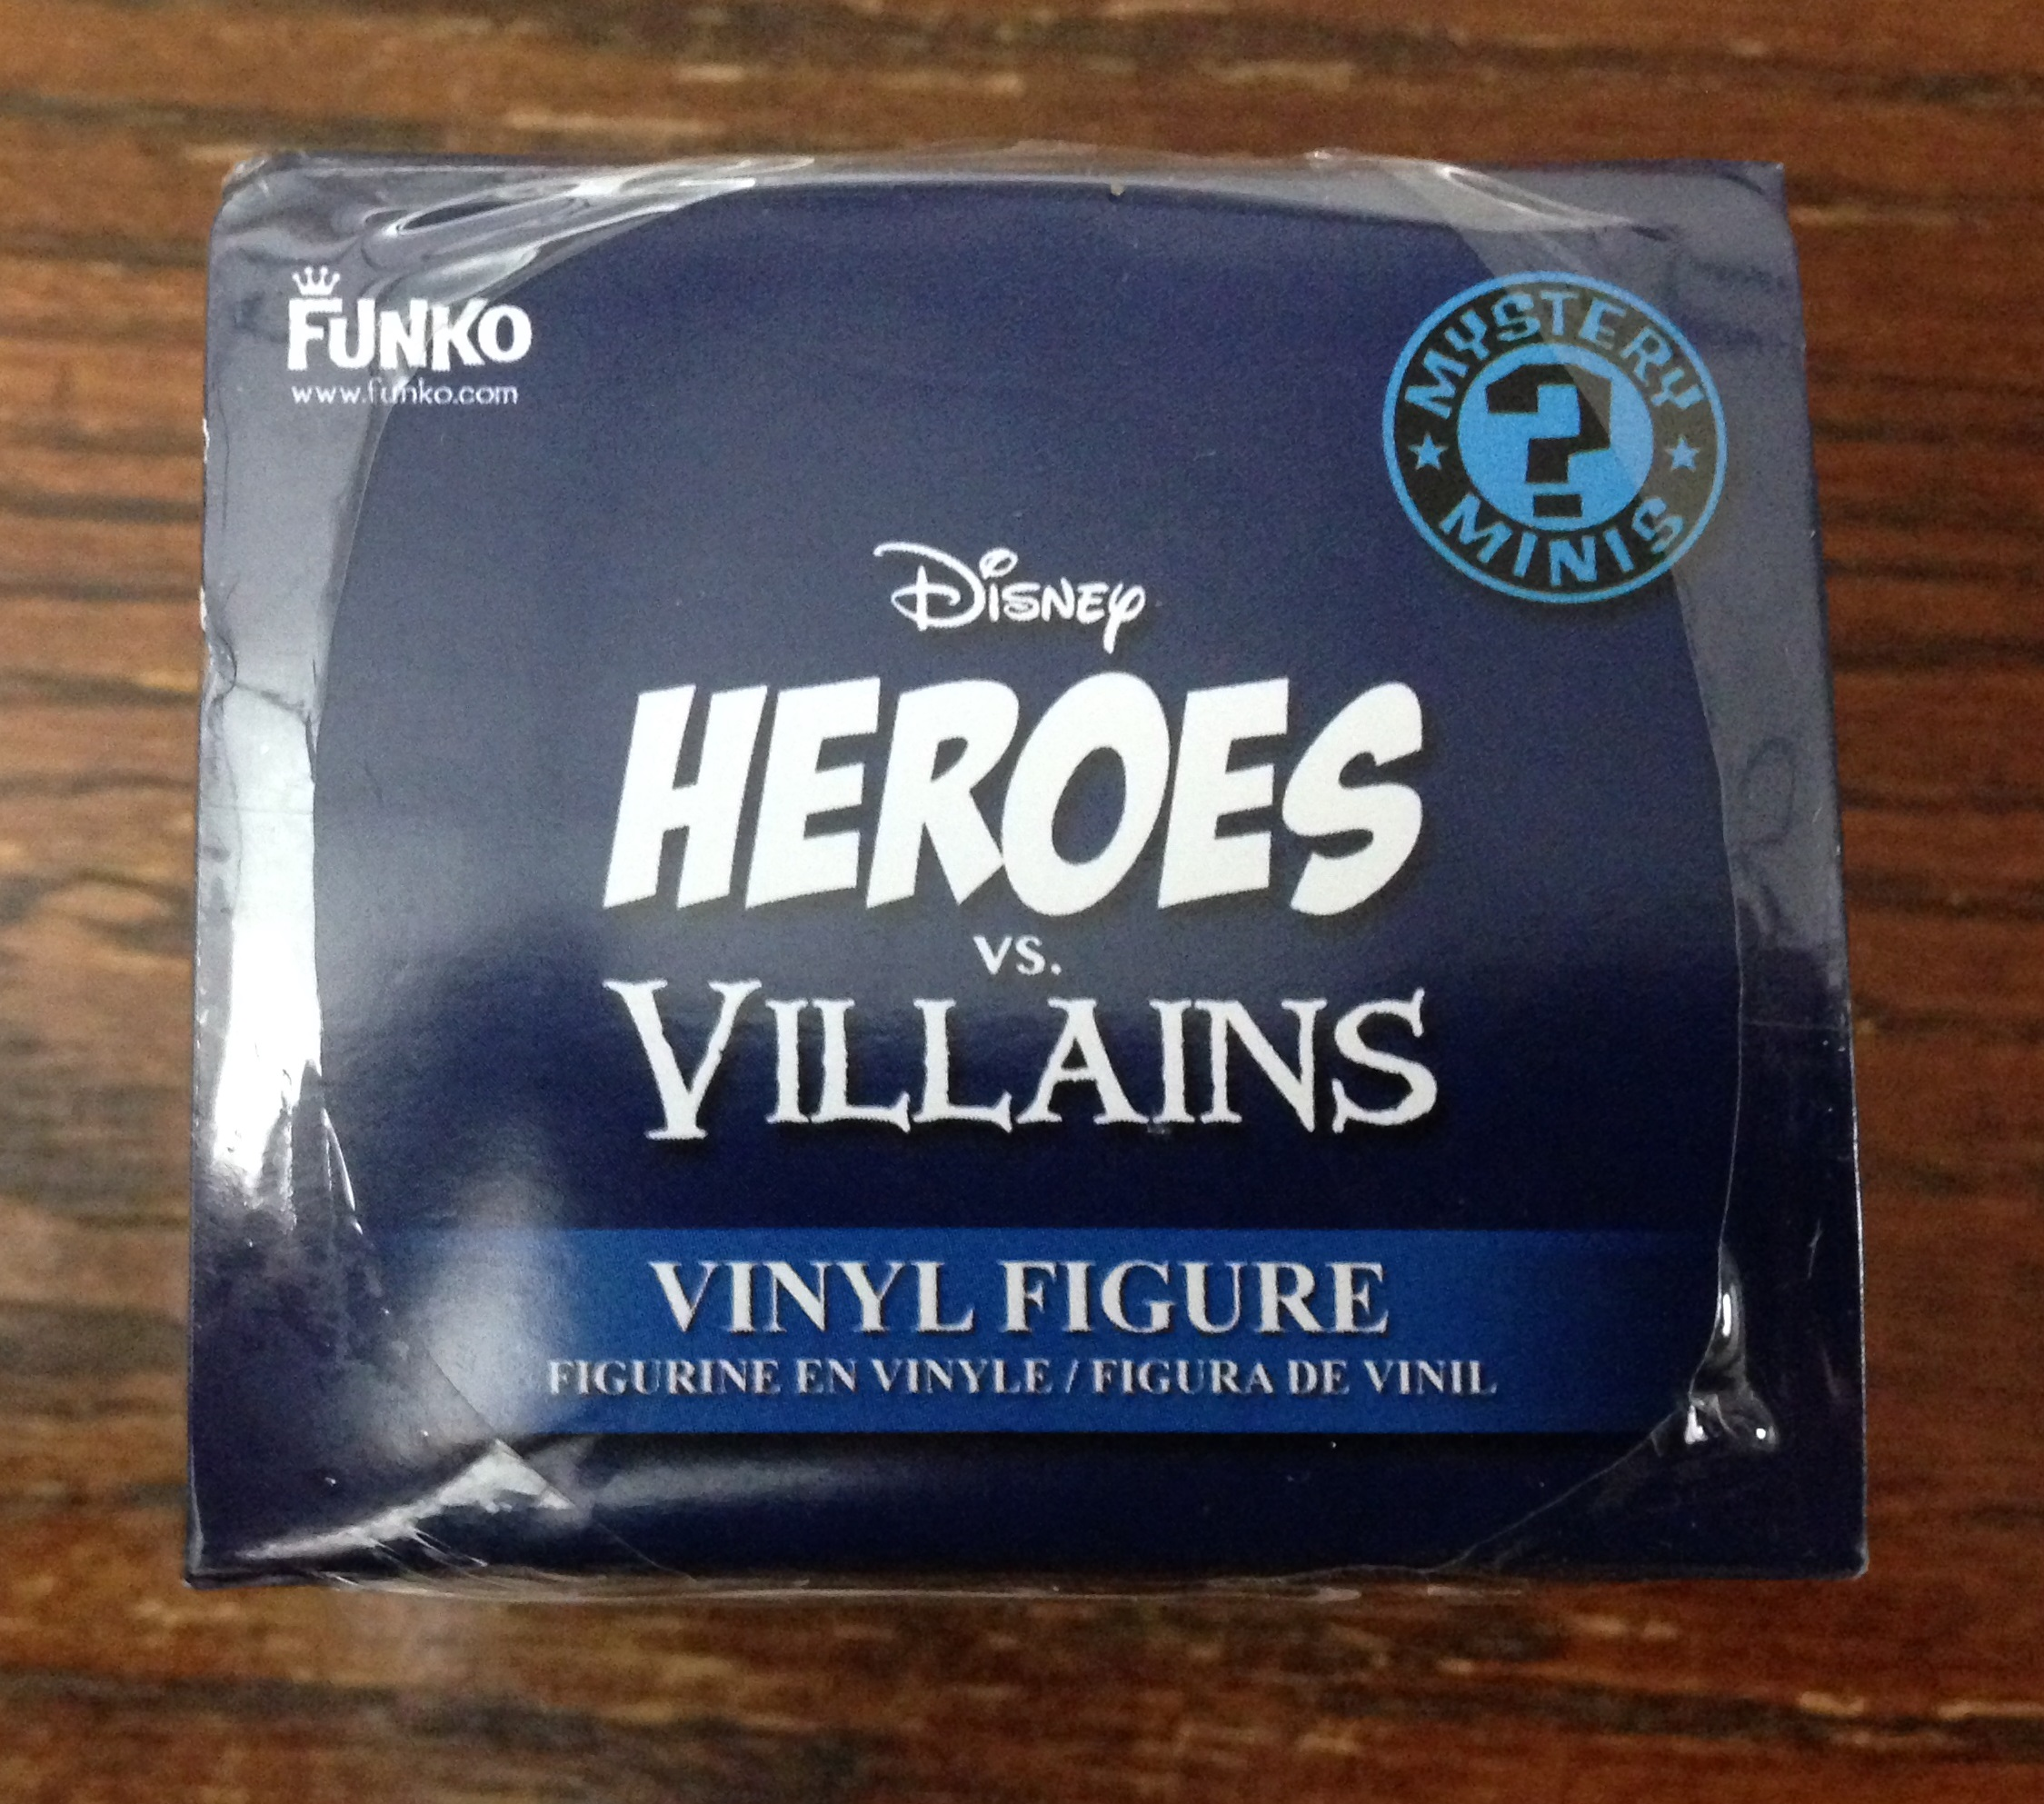 Funko-disney-villains-heroes-blind-box-bag